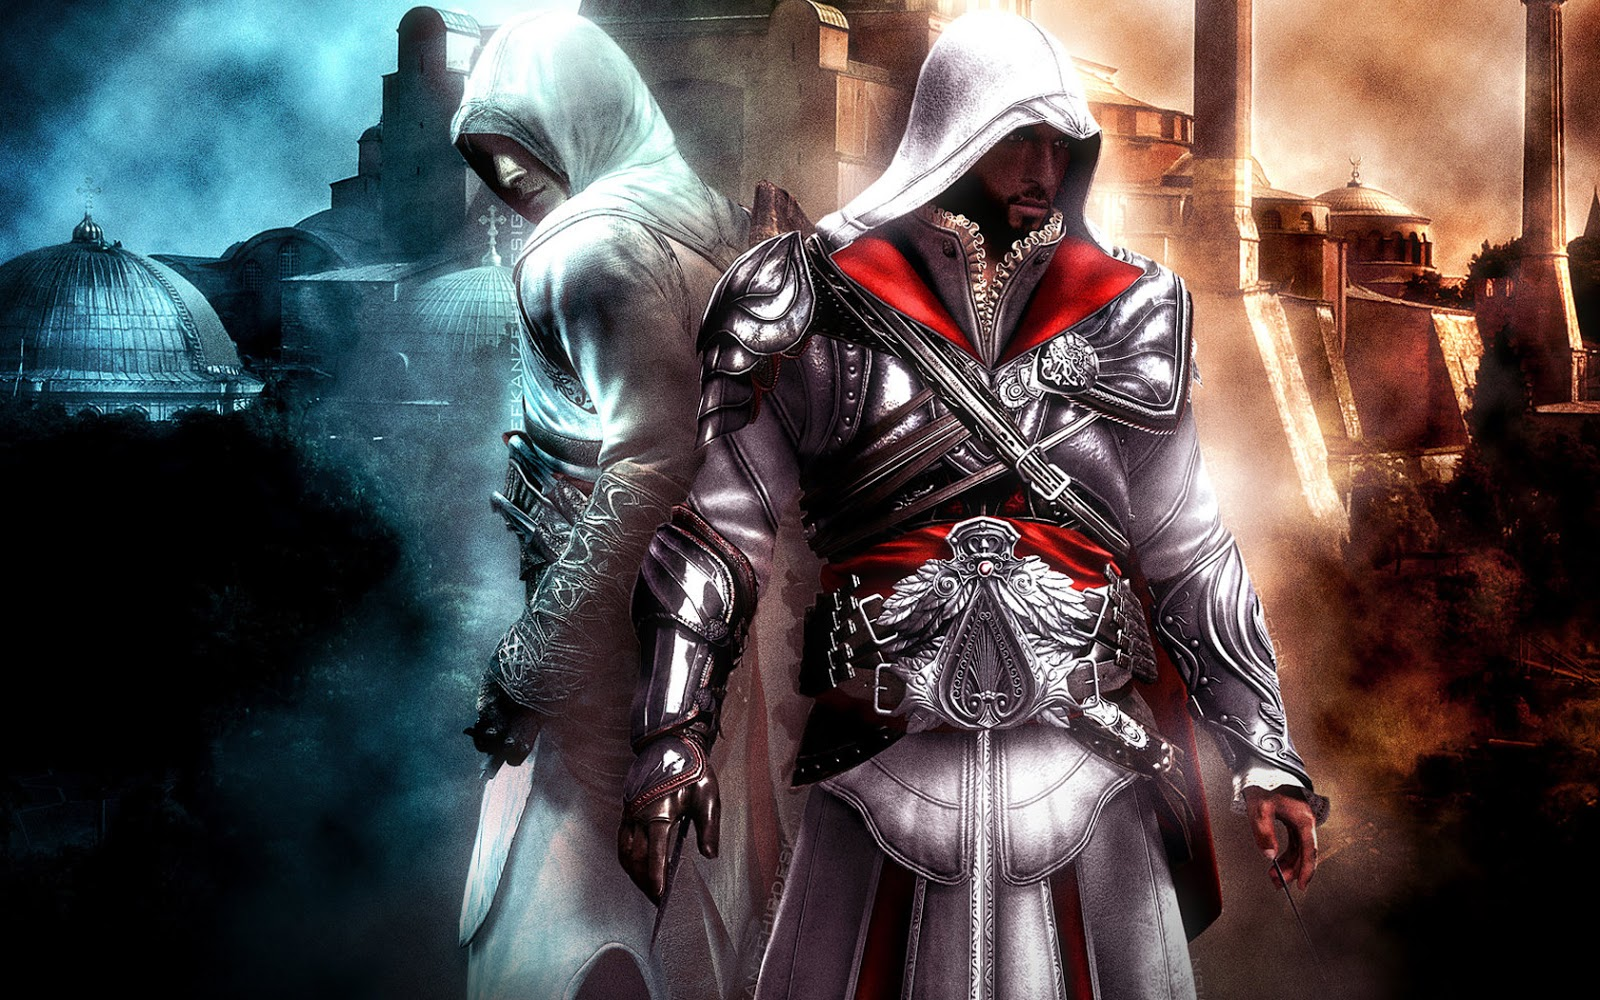 PC Download game Assassins Creed Revelations [One2Up 1600x1000